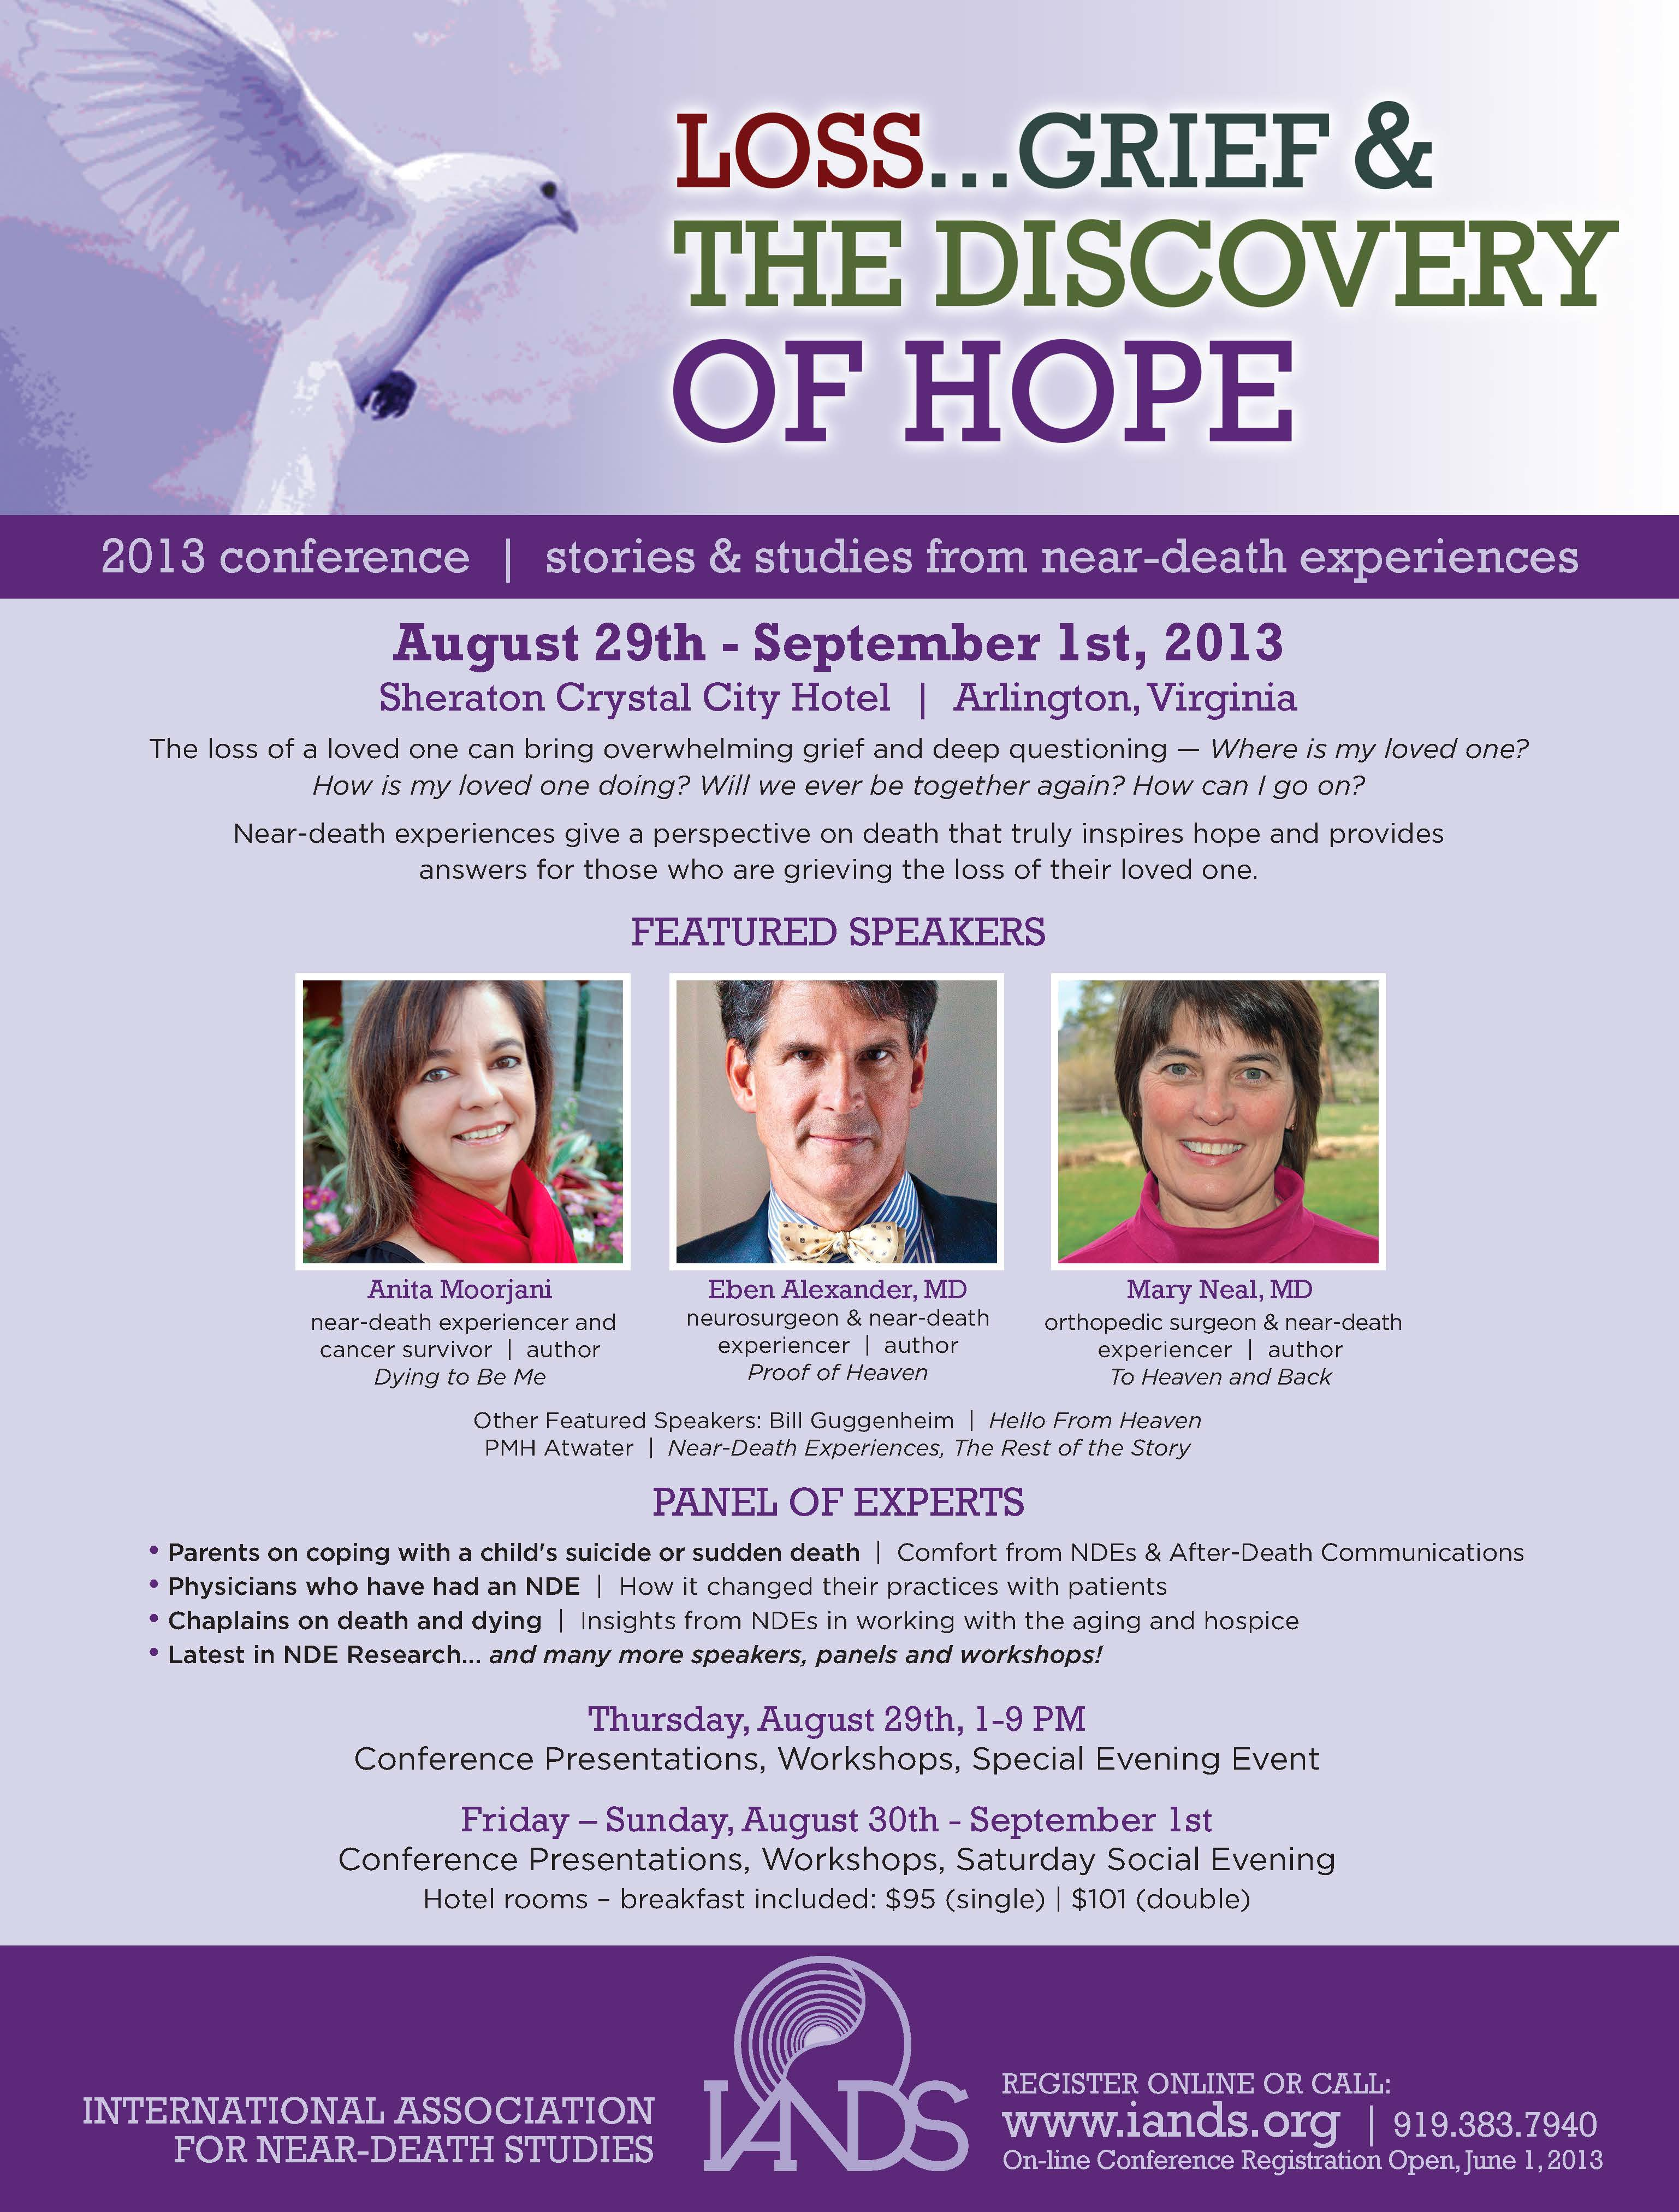 2013 Conference Featured Speakers!